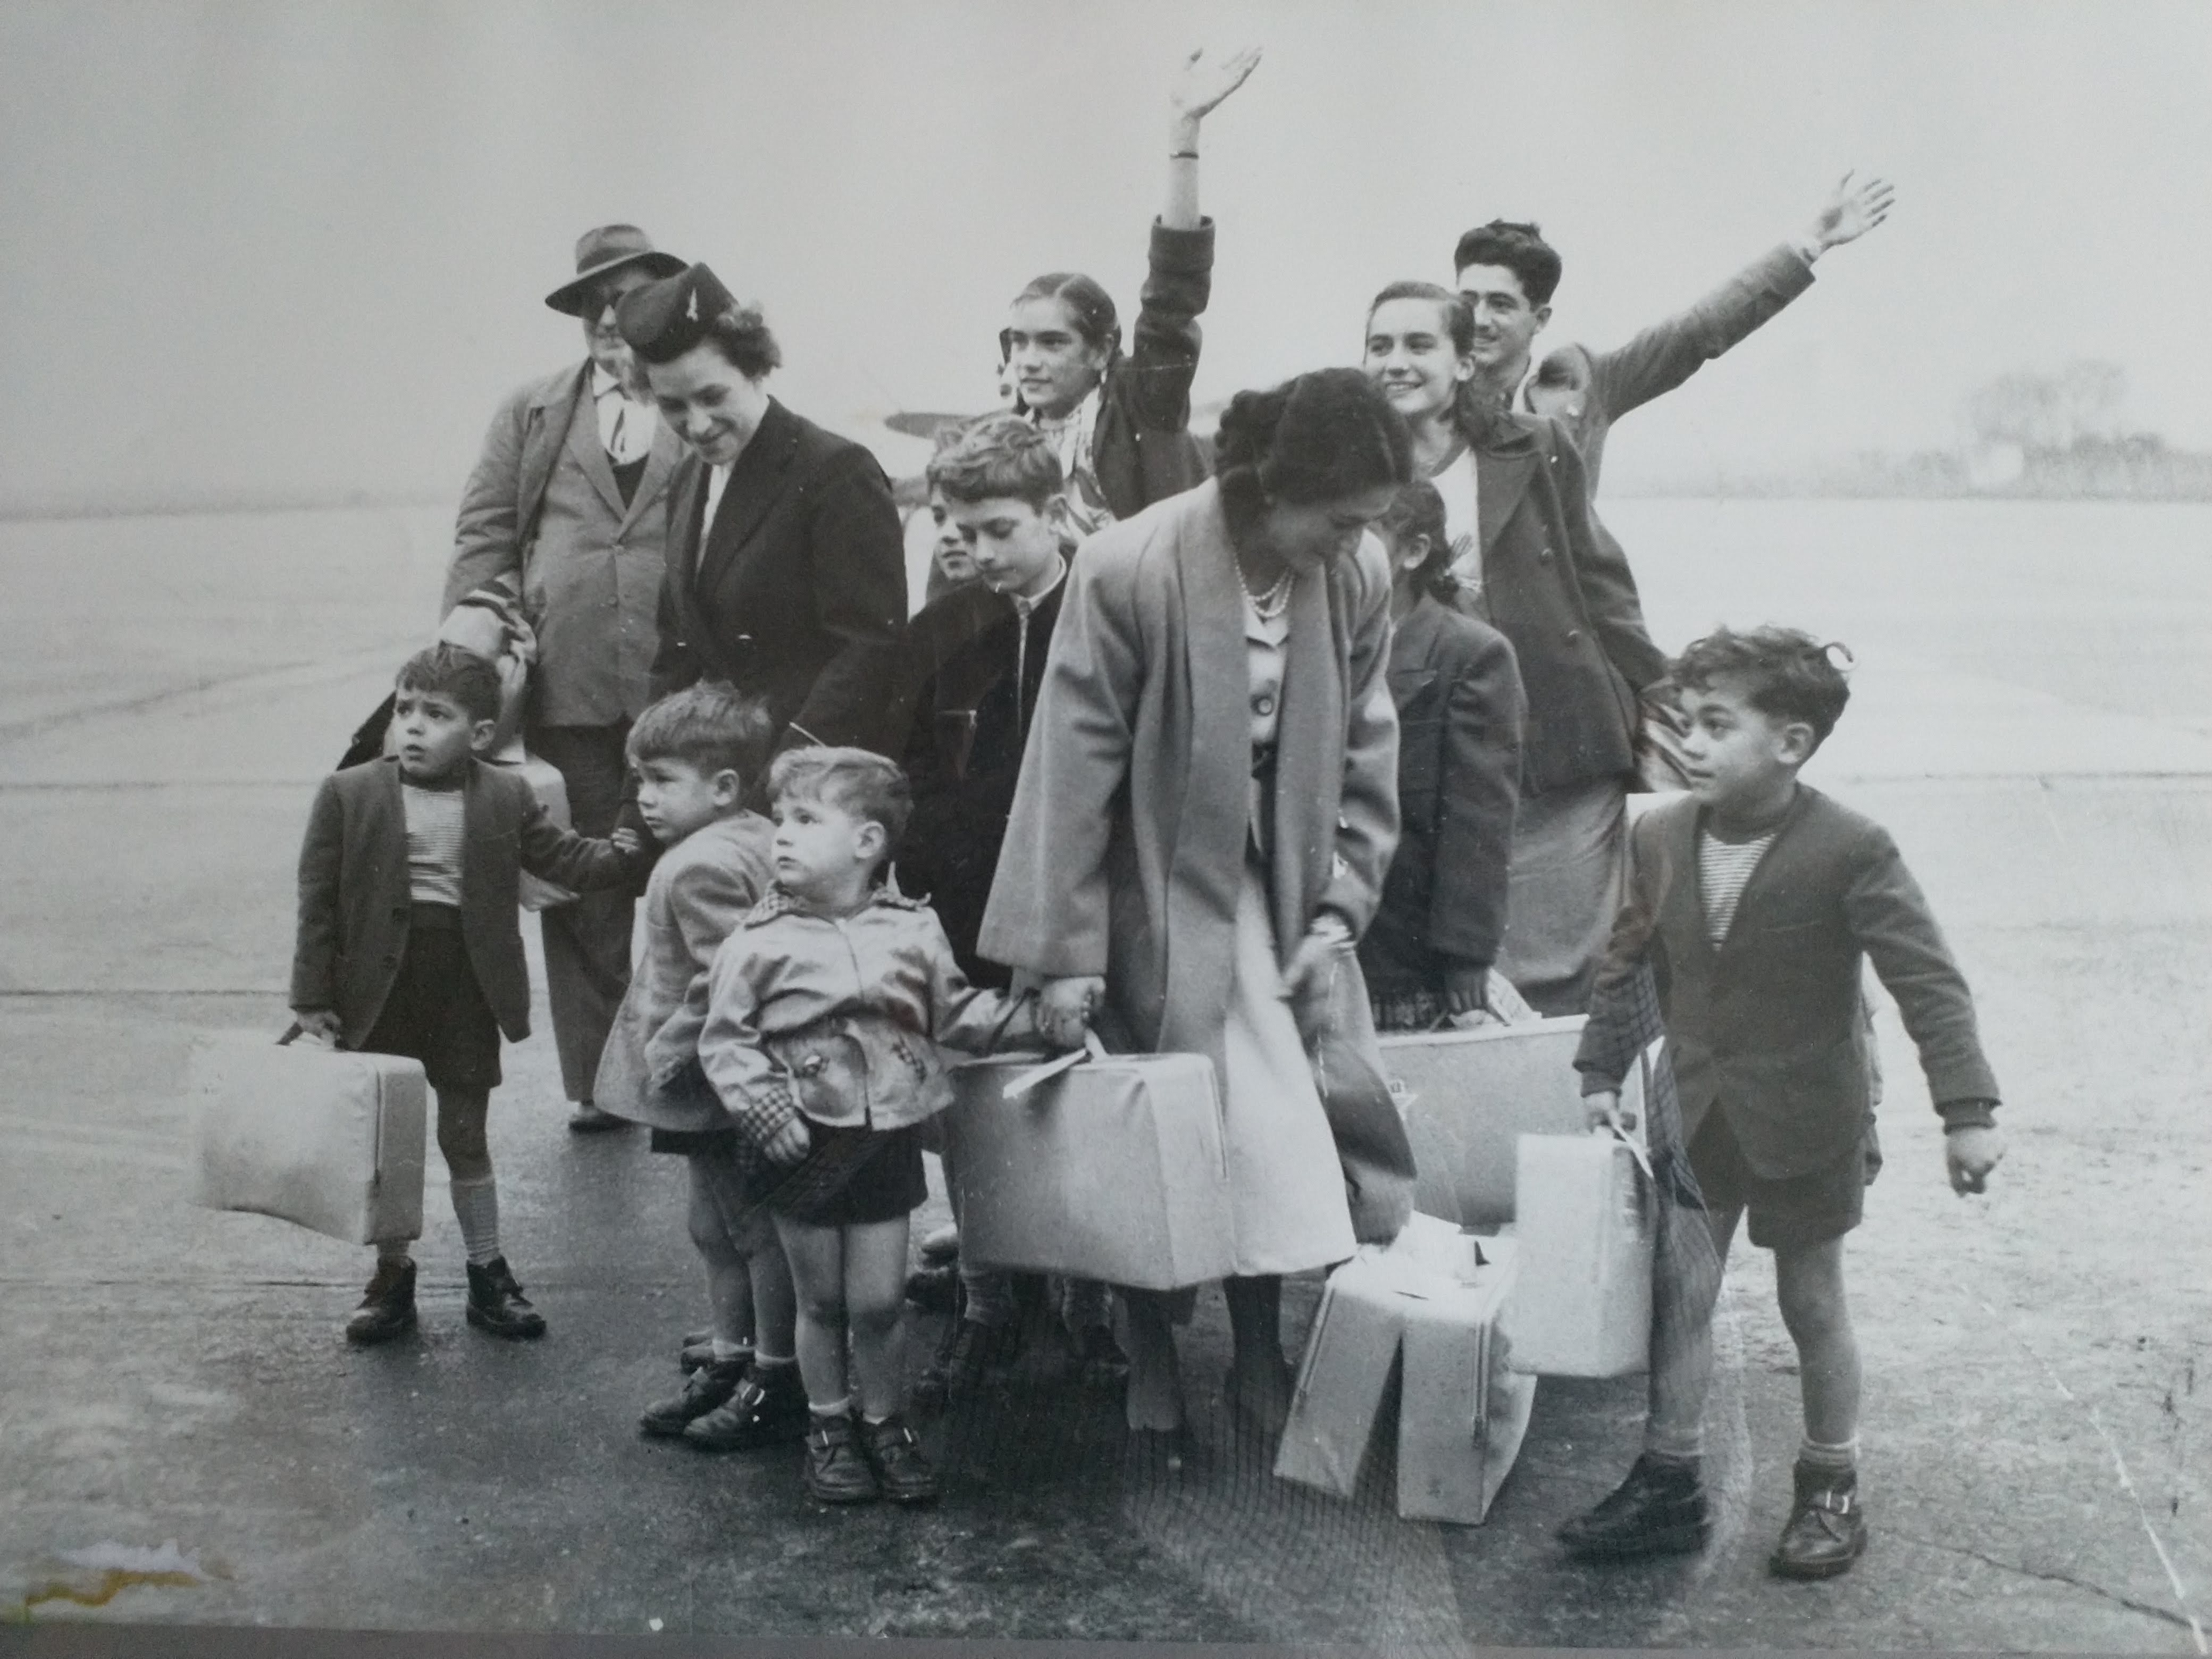 Image of a large family with suitcases